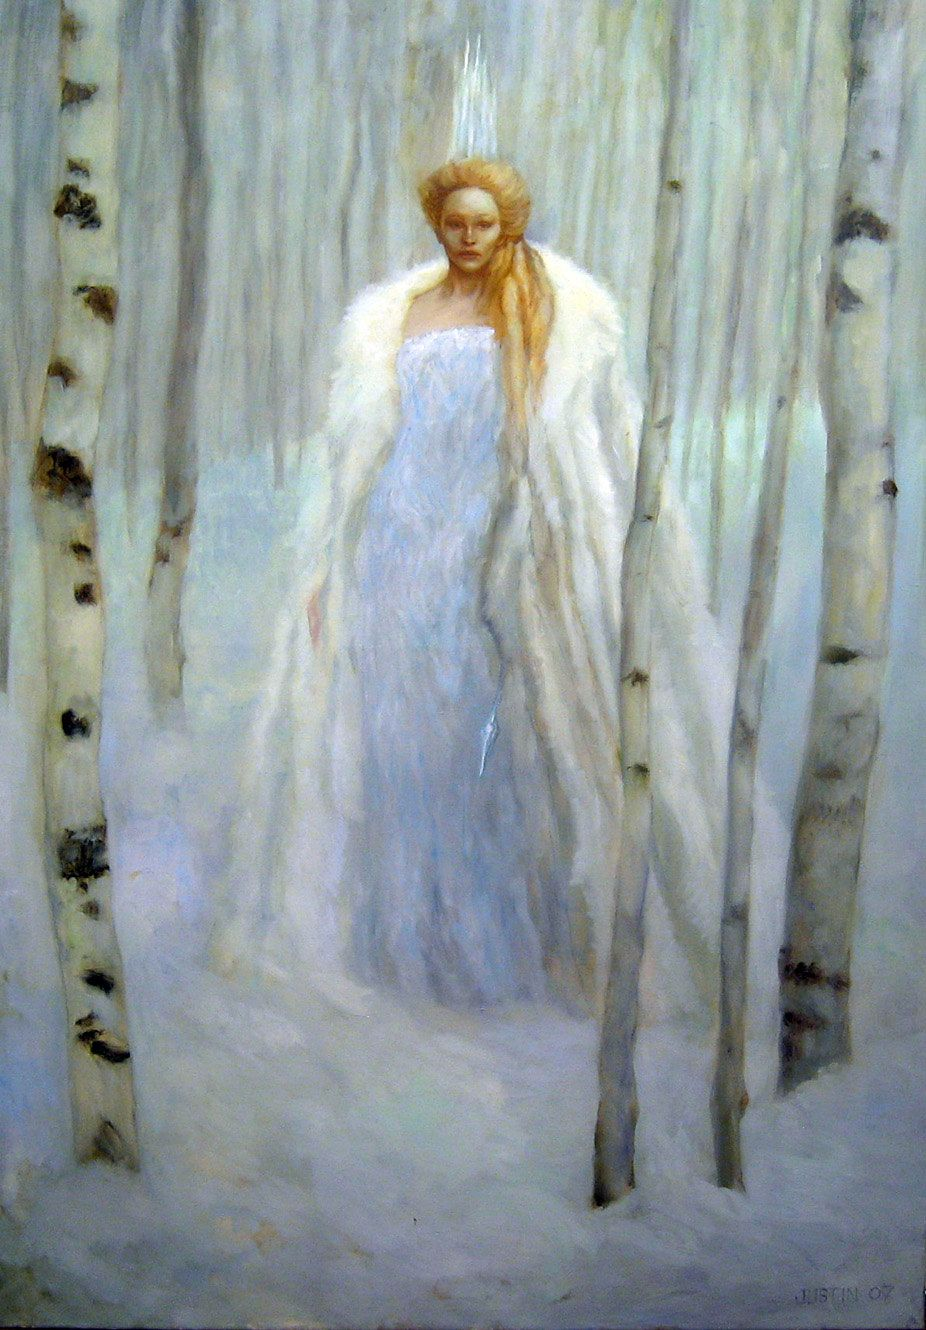 The White Witch of Narnia by Justin Sweet | Fantasy Art ...